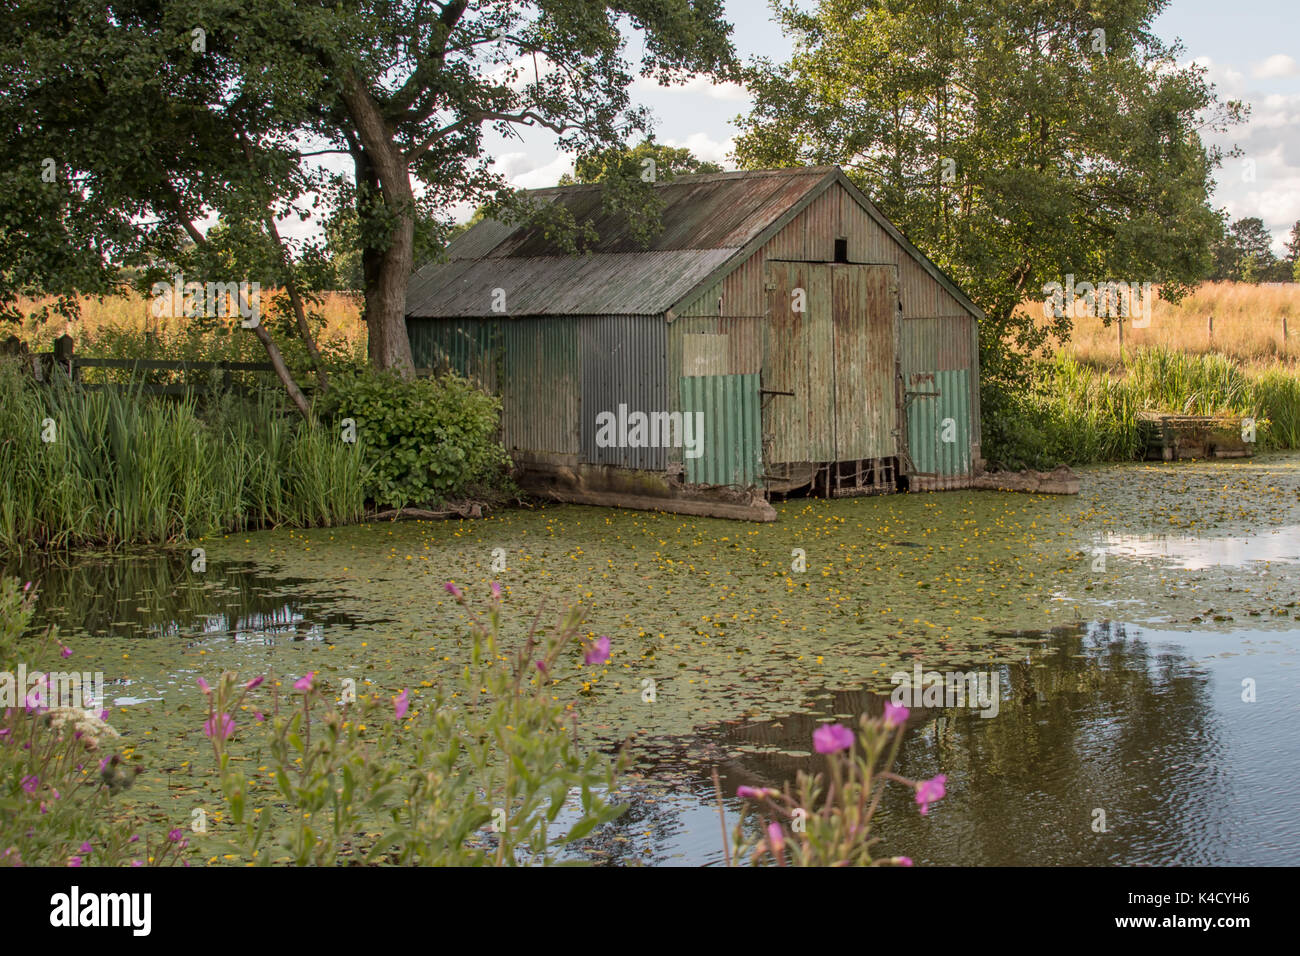 An old metal corrugated derelict boat shed a standing in the corner of a pool showing signs of neglect - Stock Image